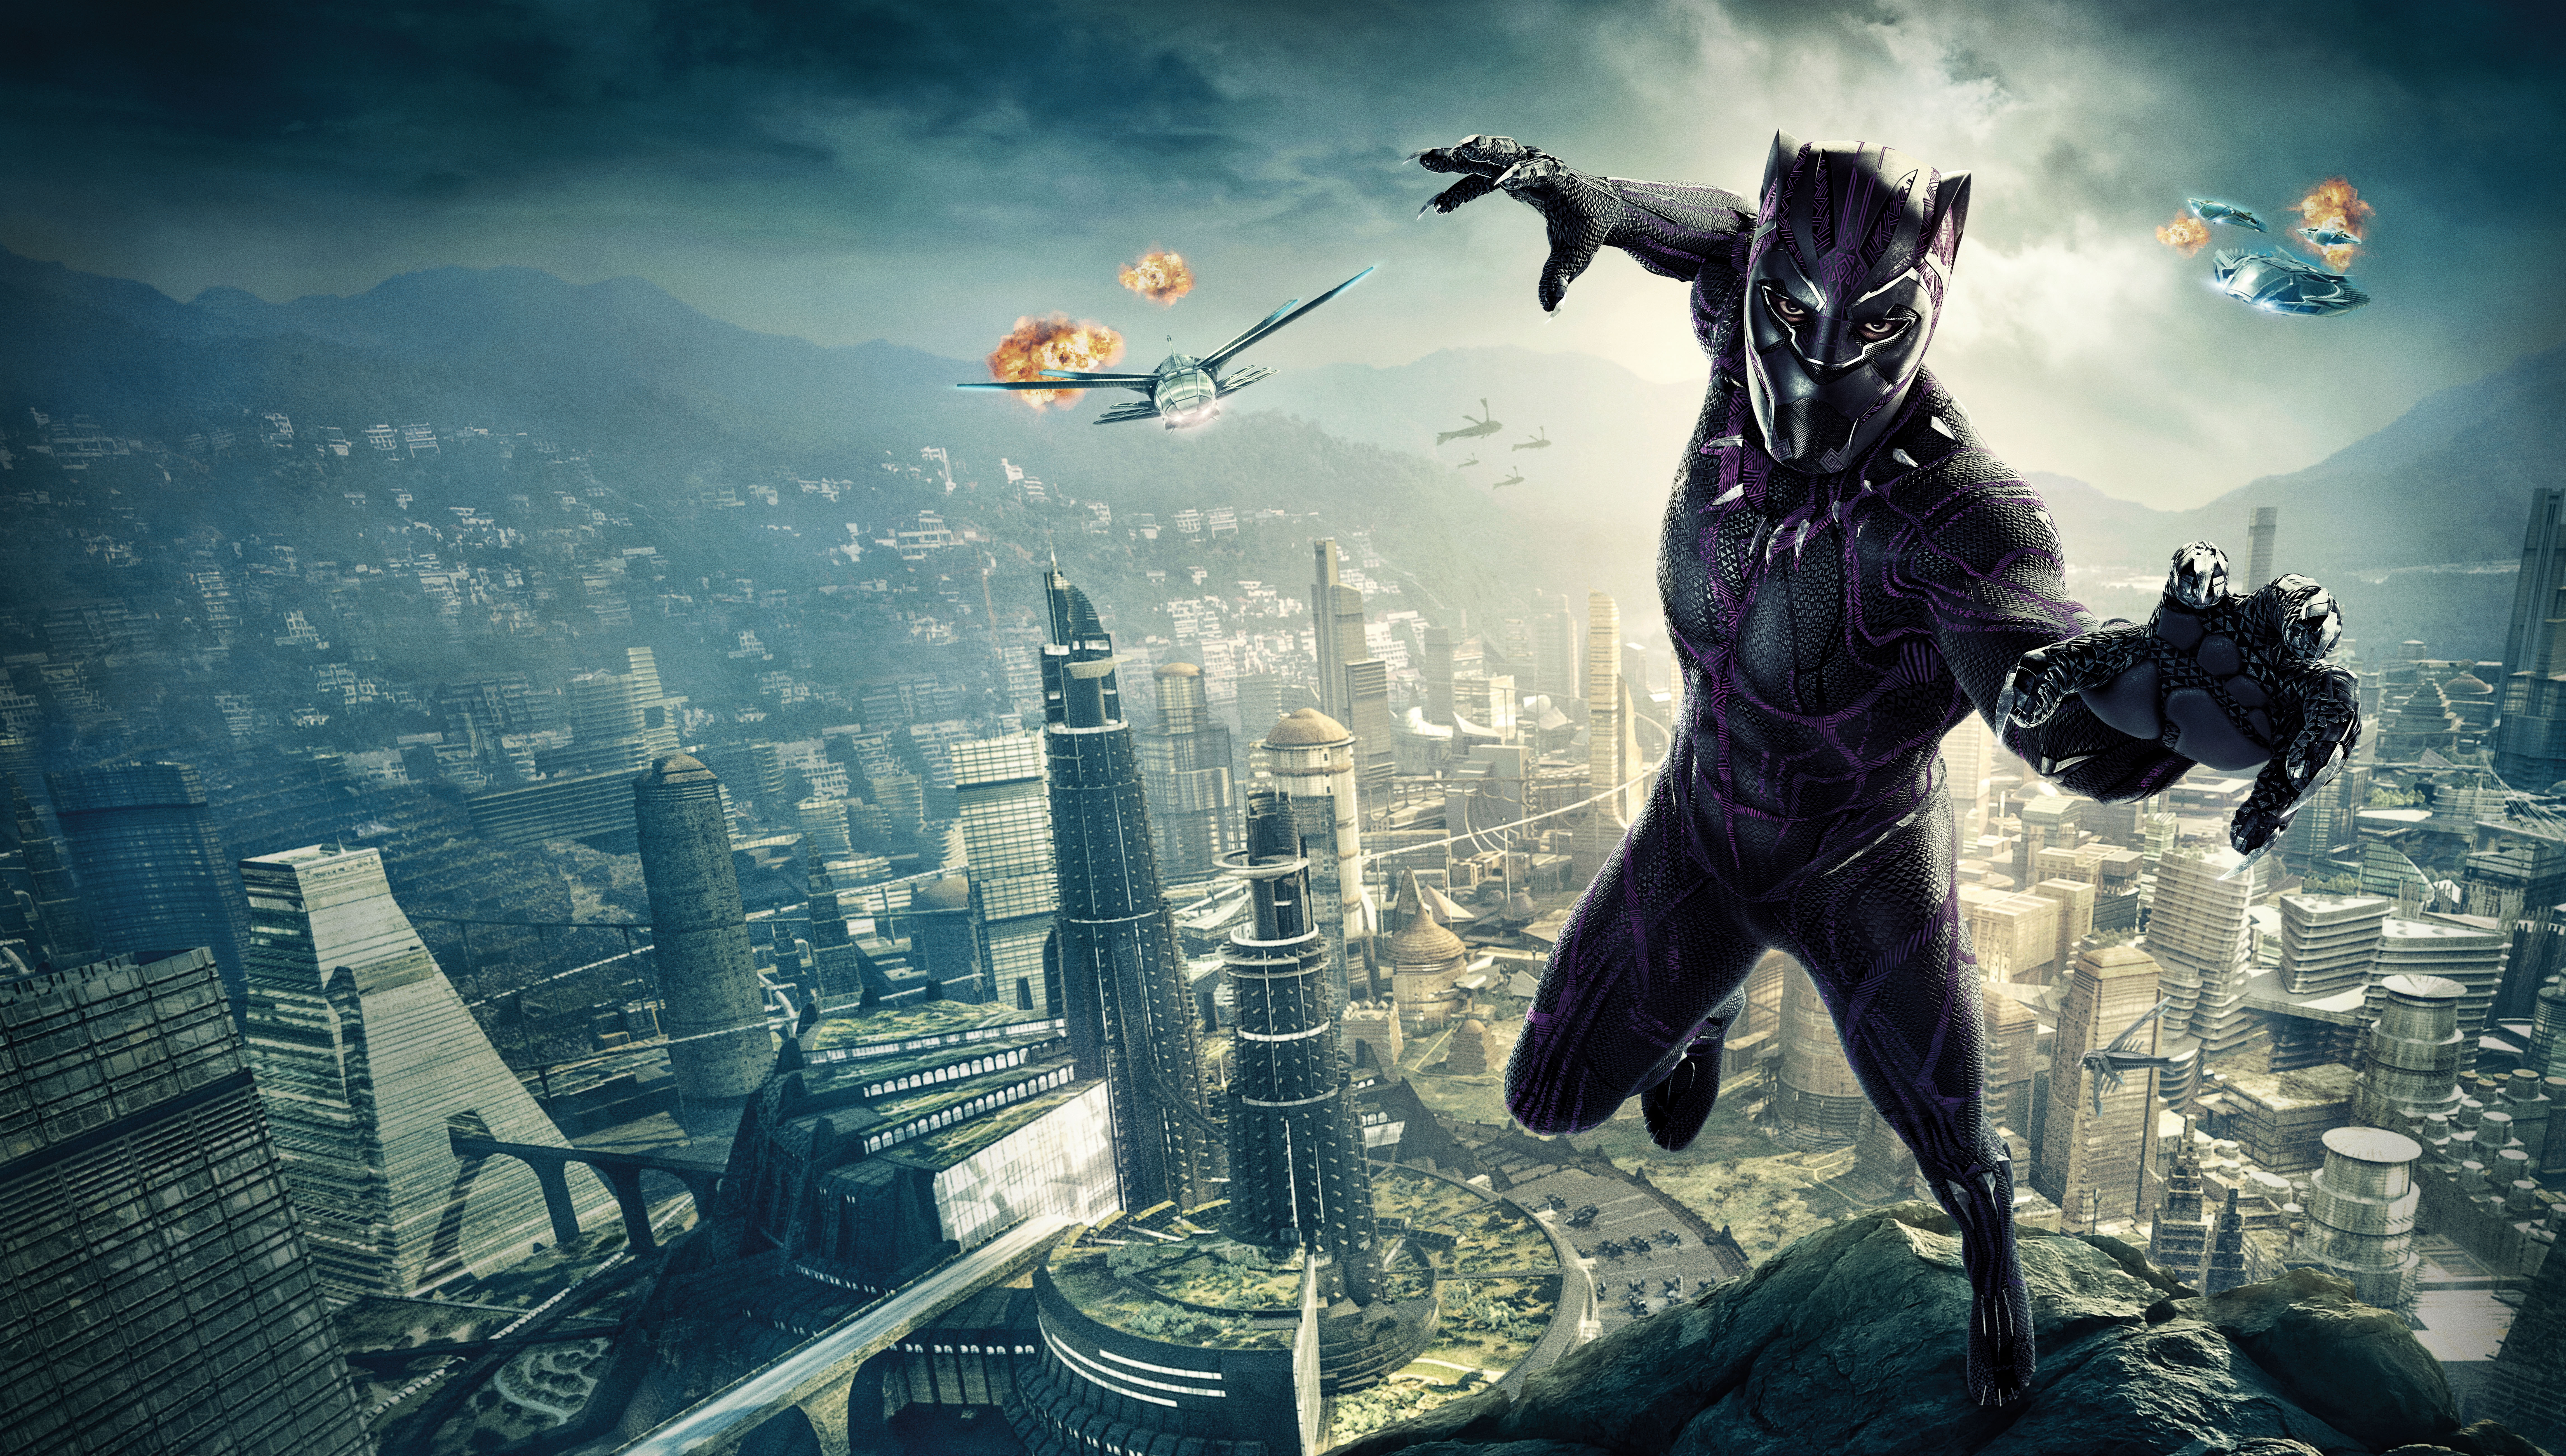 Black Panther HD Wallpapers, Pictures, Images